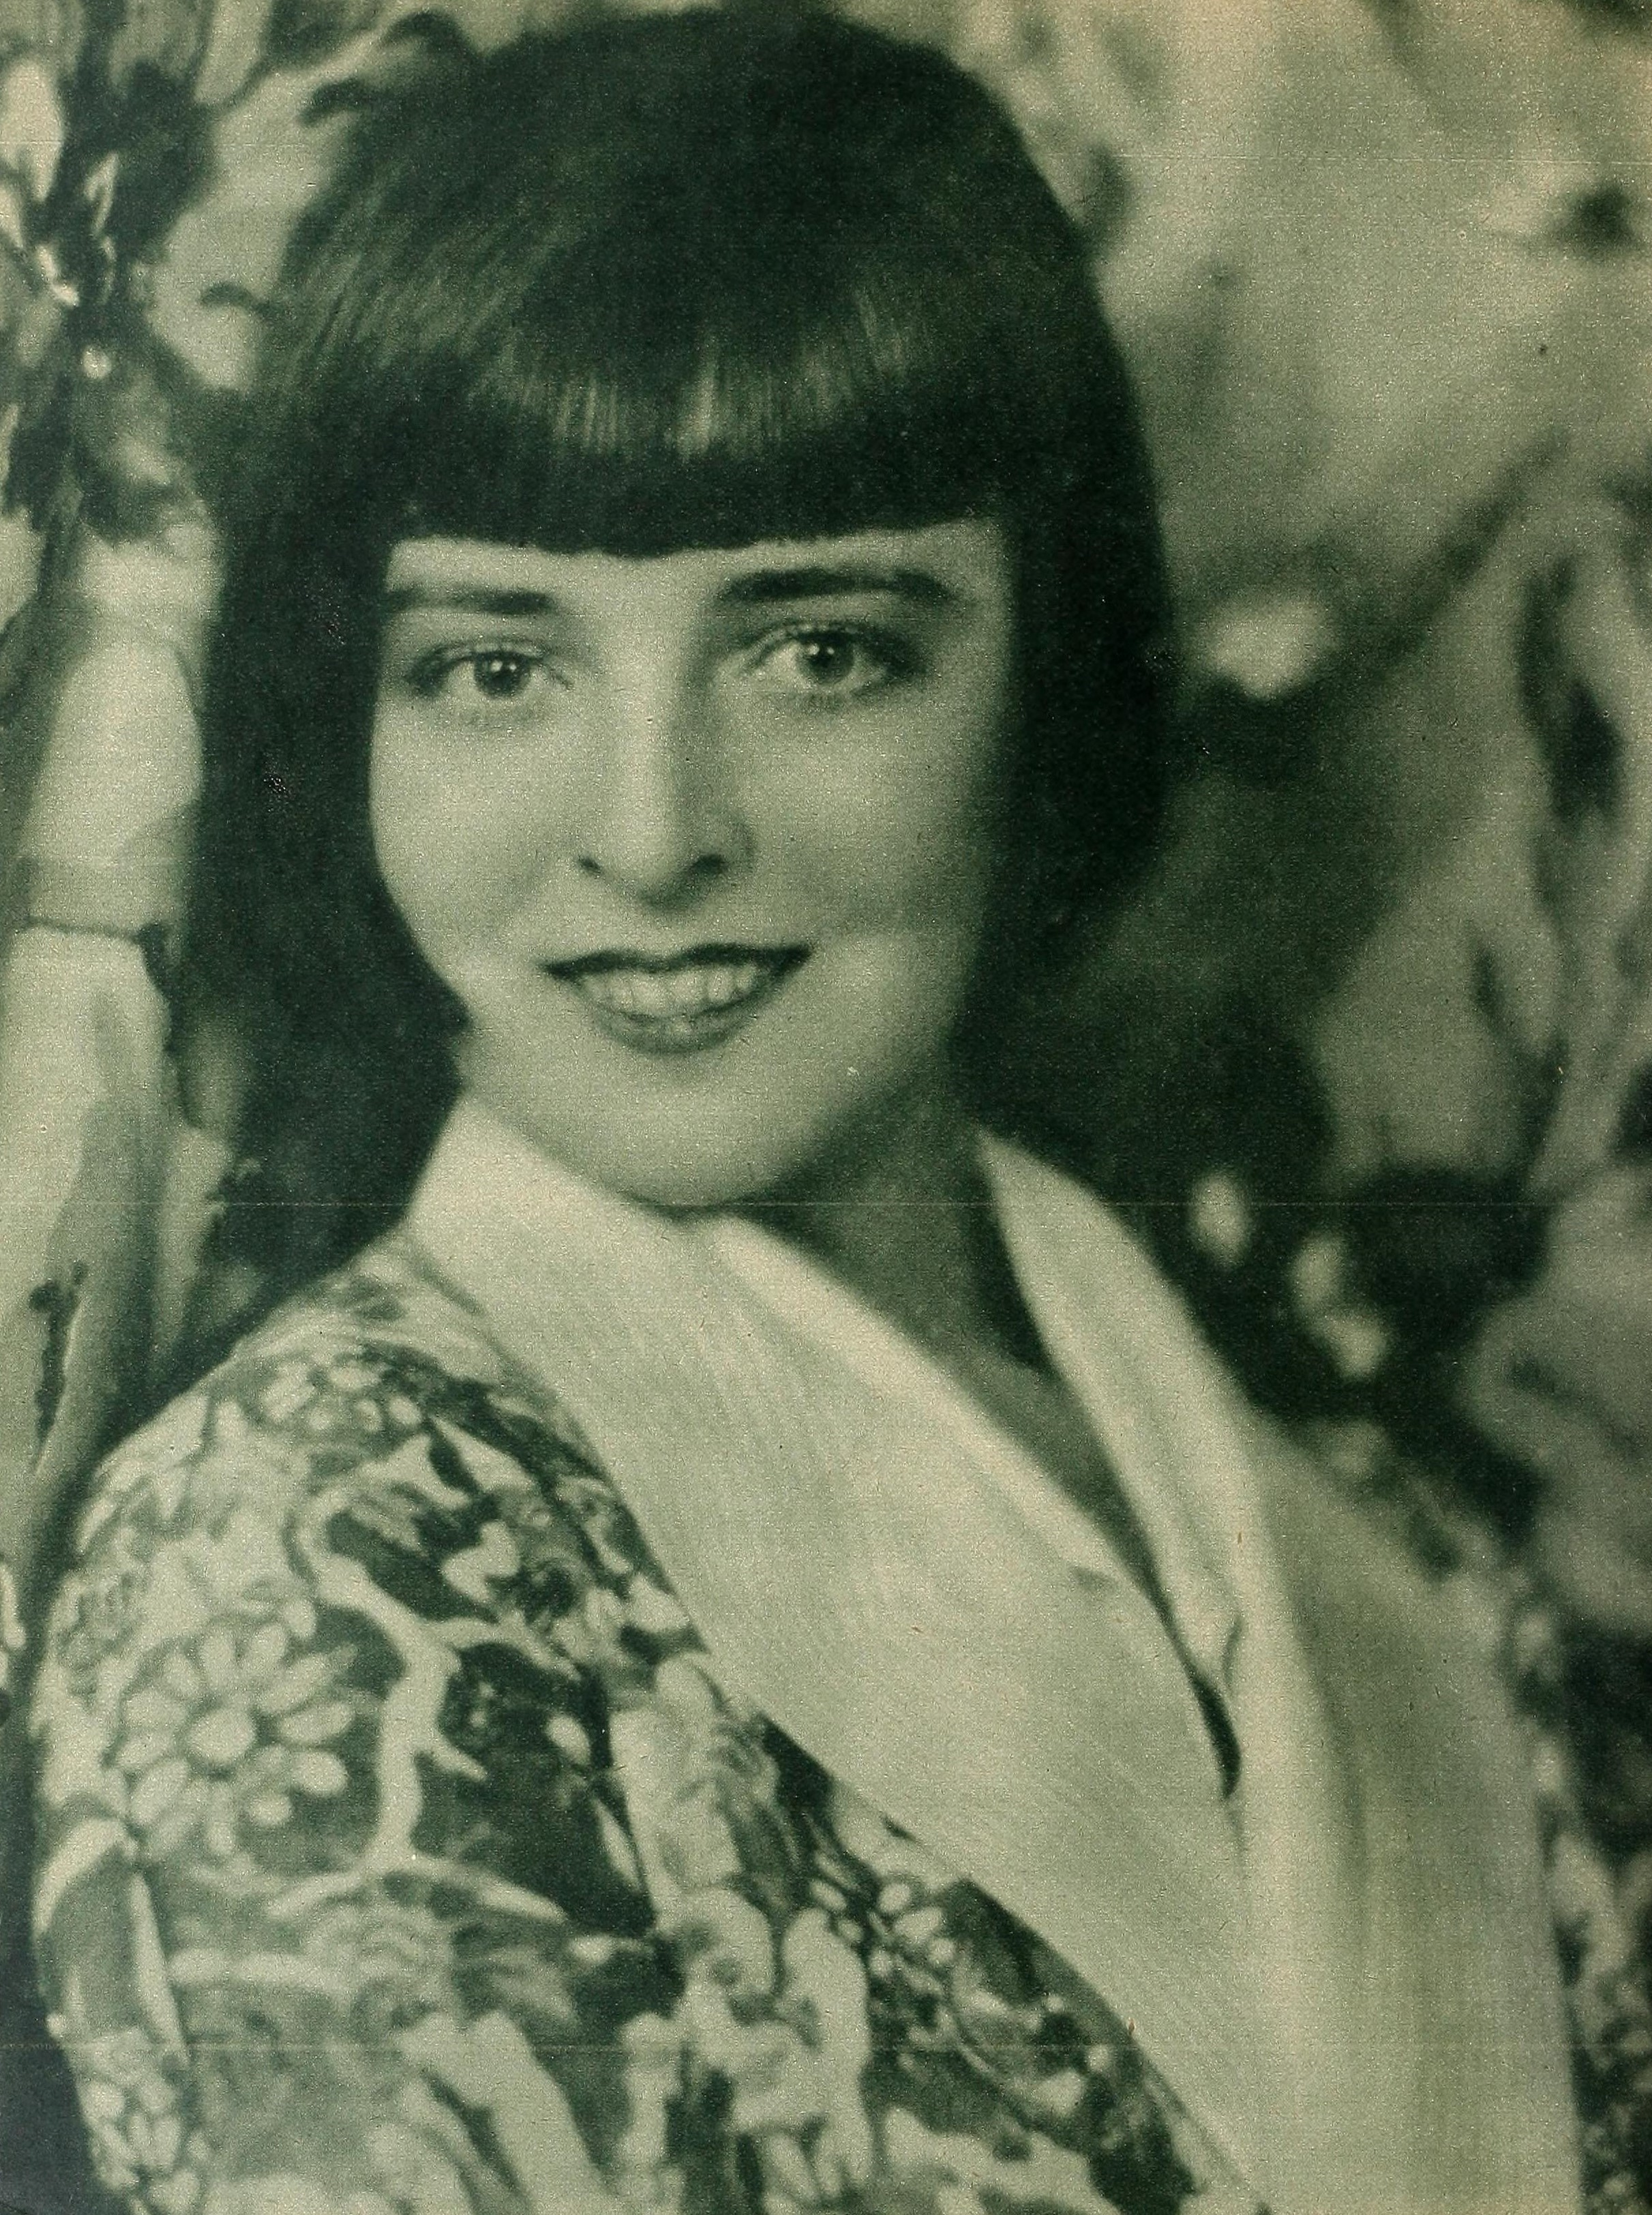 1899 : Kathleen Morrison (Colleen Moore) Born, Future Famous Actress and Flapper